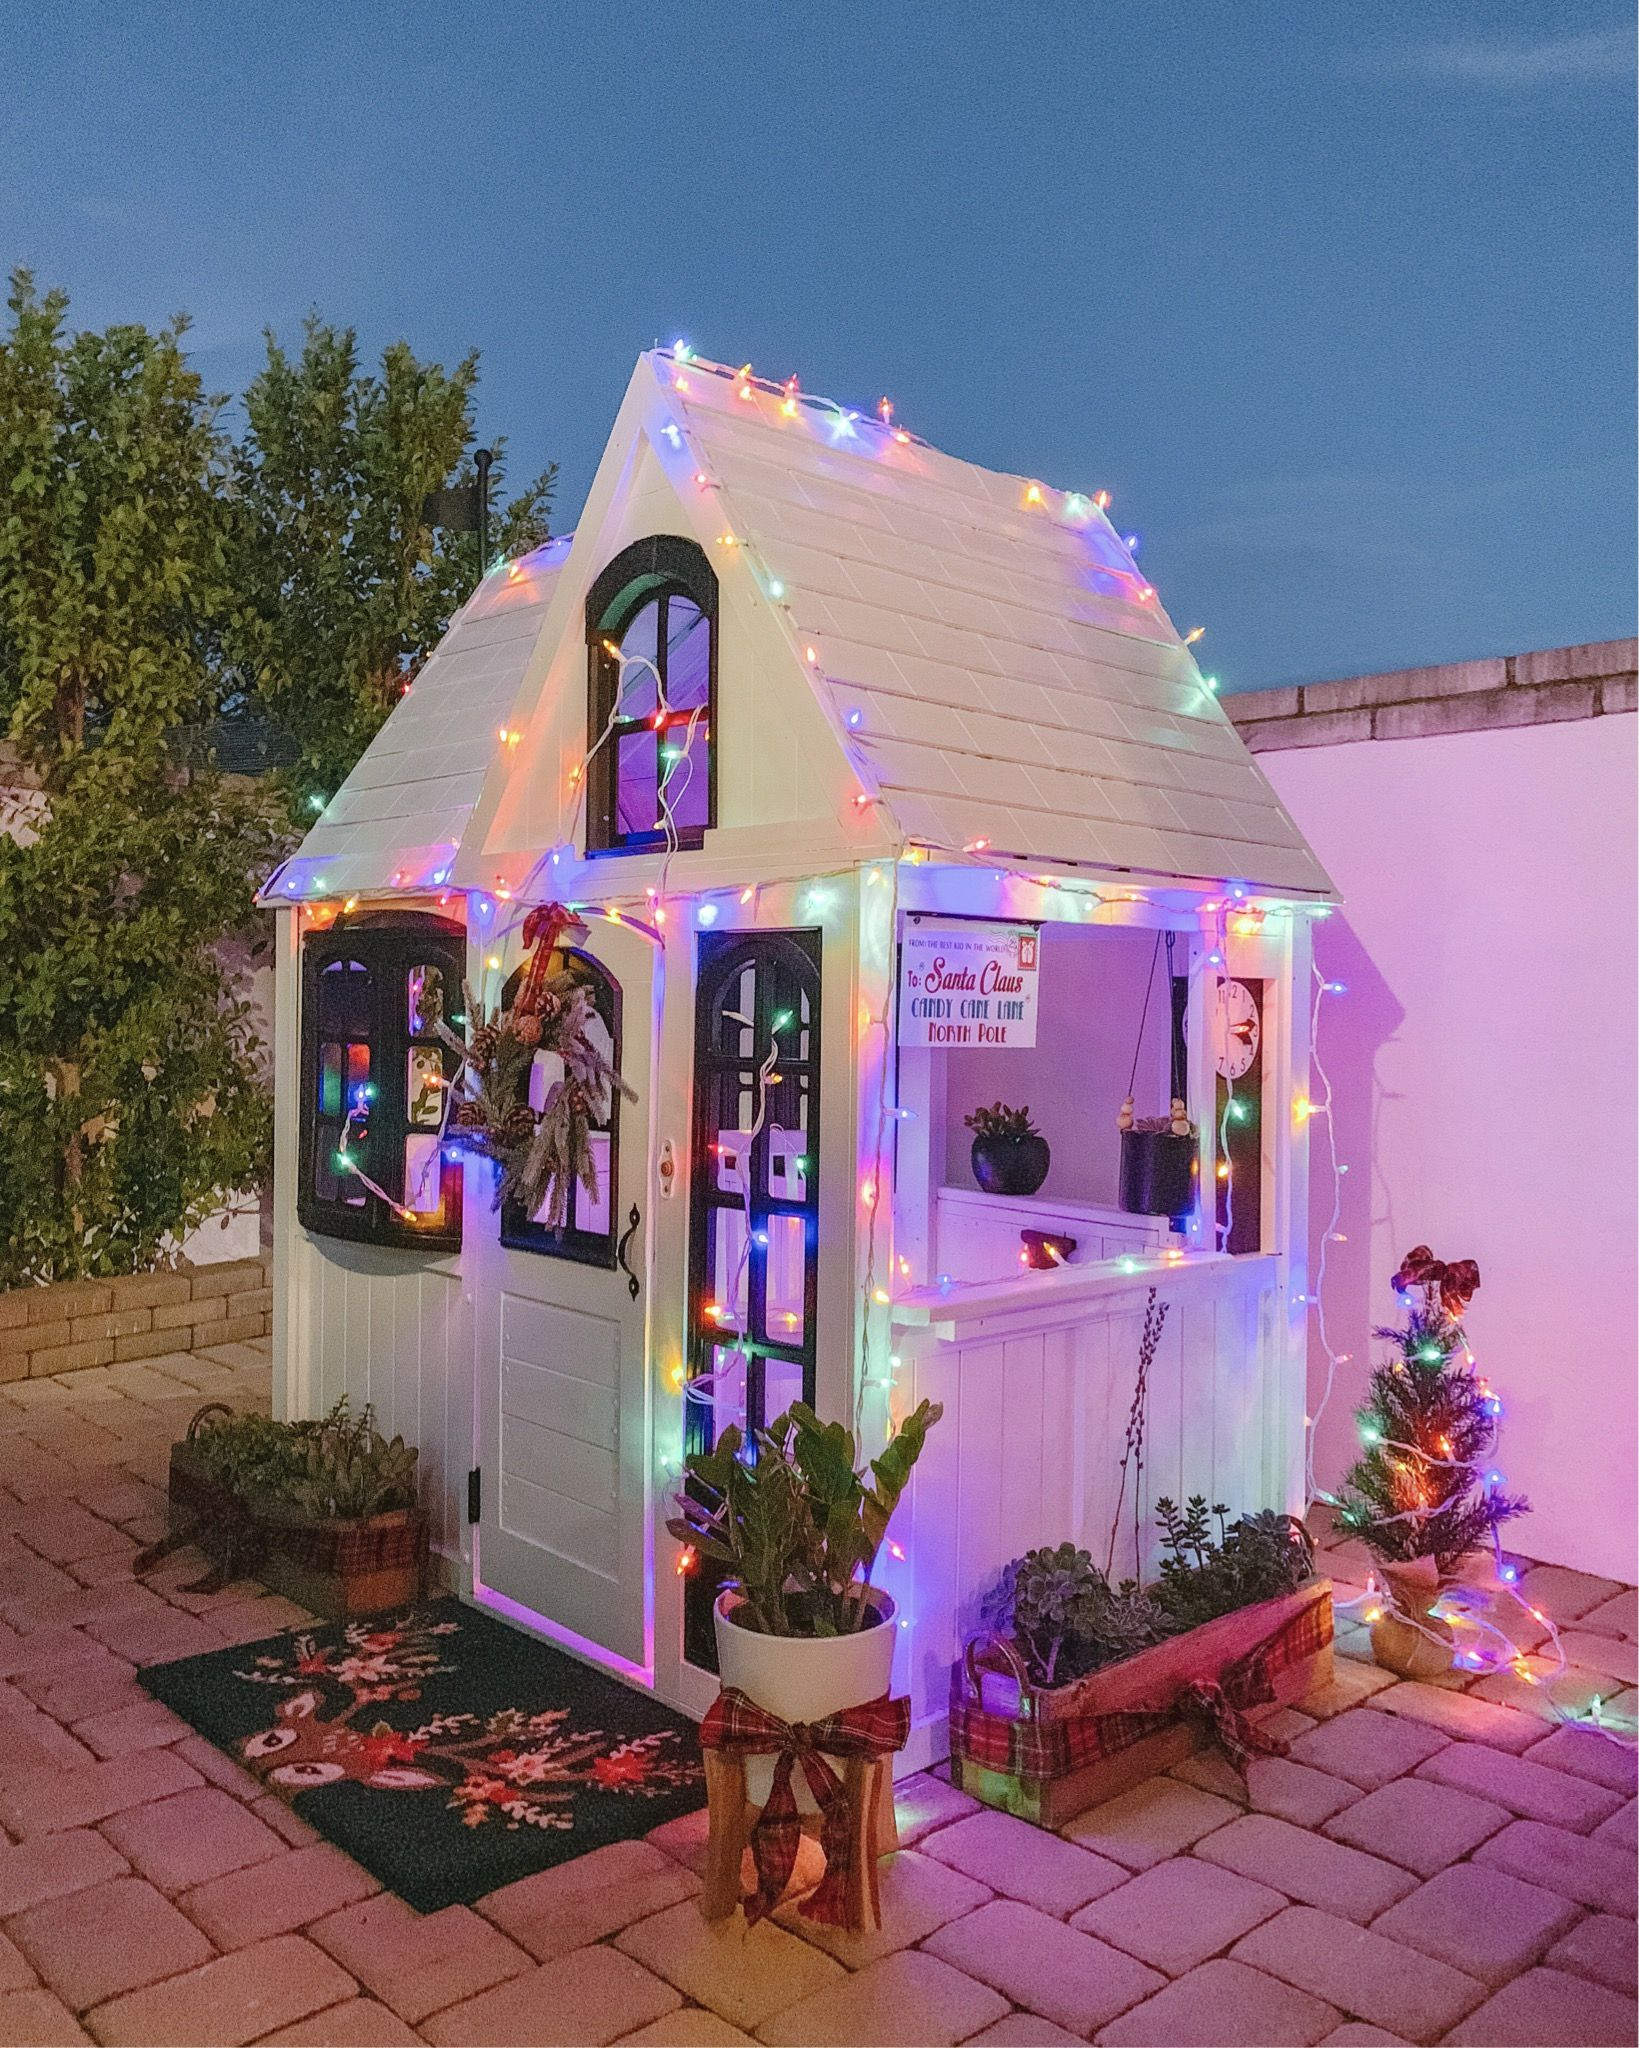 Our Playhouse Decorated Holidays + Fall + Winter + Spring